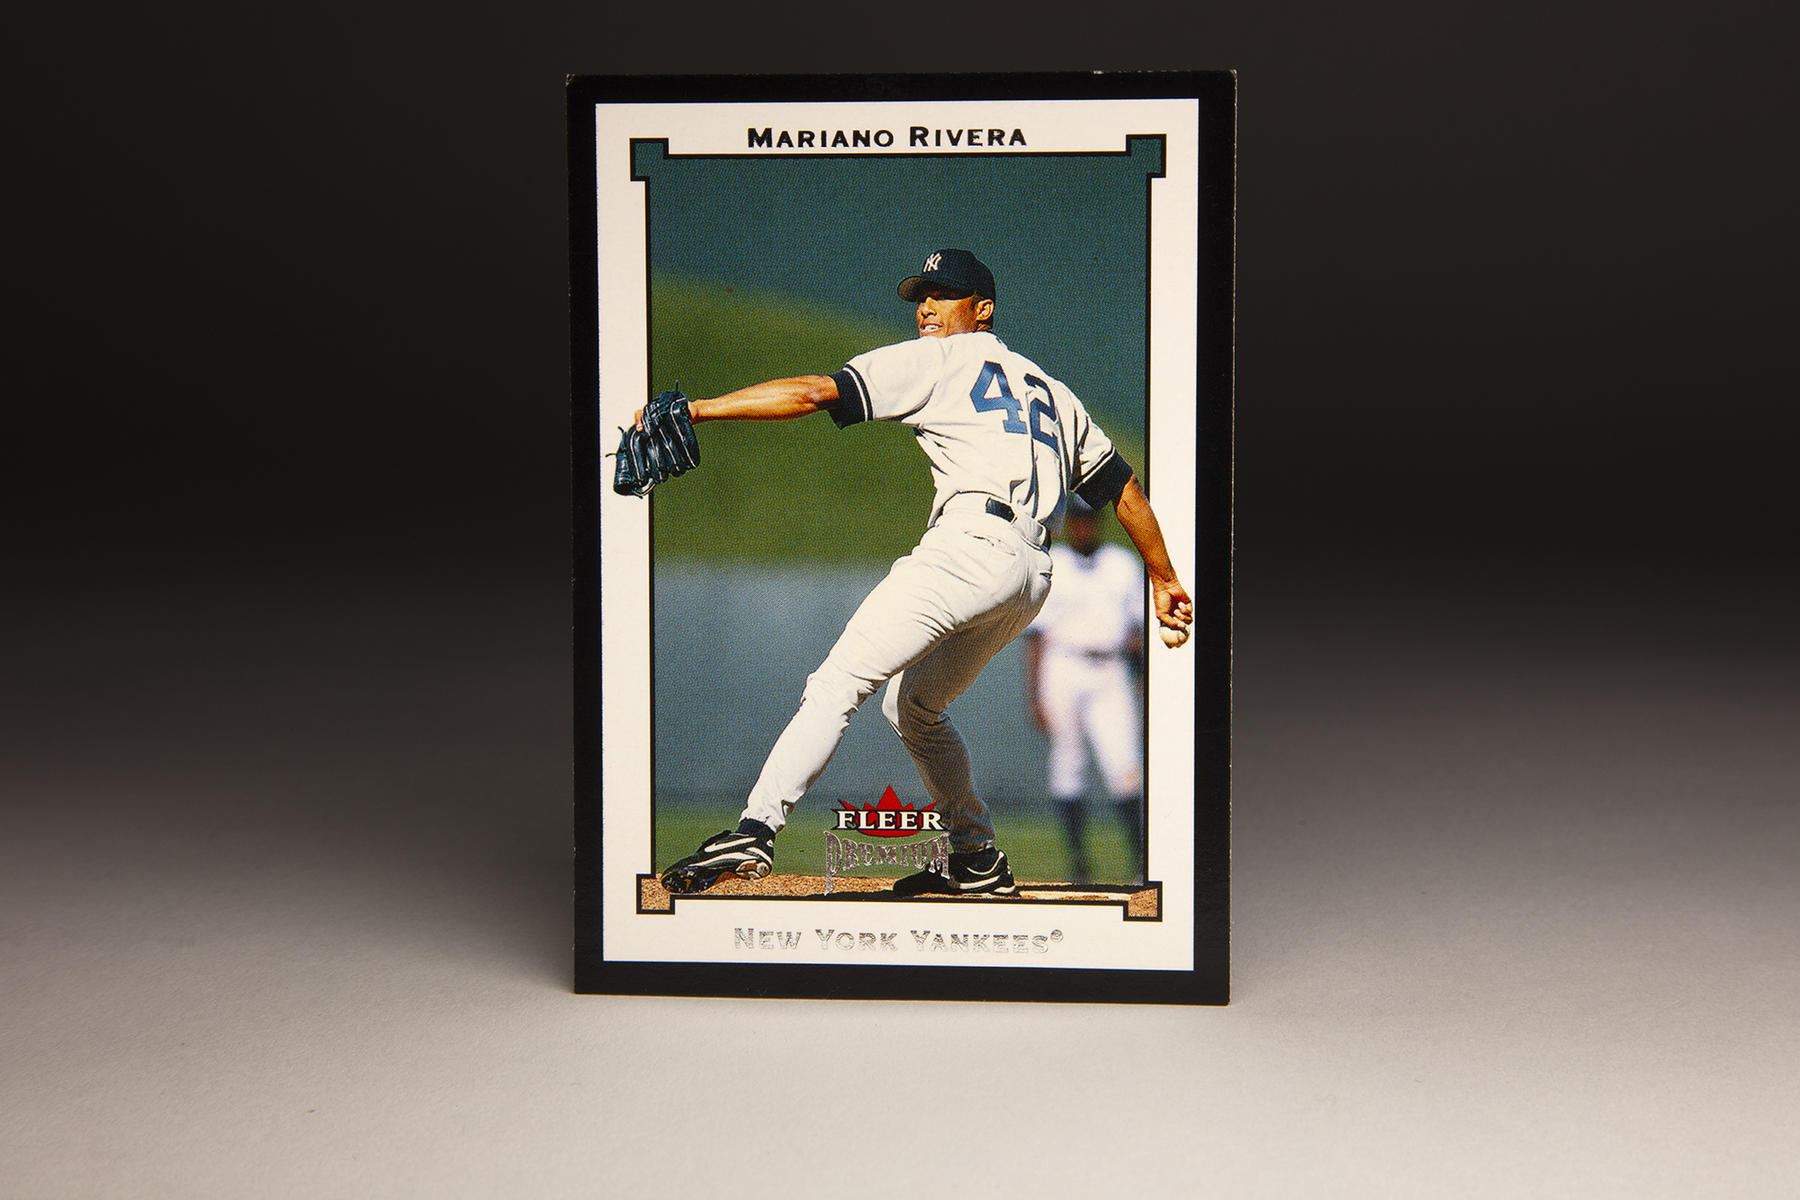 """The front of Fleer's 2002 Mariano Rivera card, which Fleer included in its """"Premium"""" set. (Milo Stewart Jr./National Baseball Hall of Fame and Museum)"""